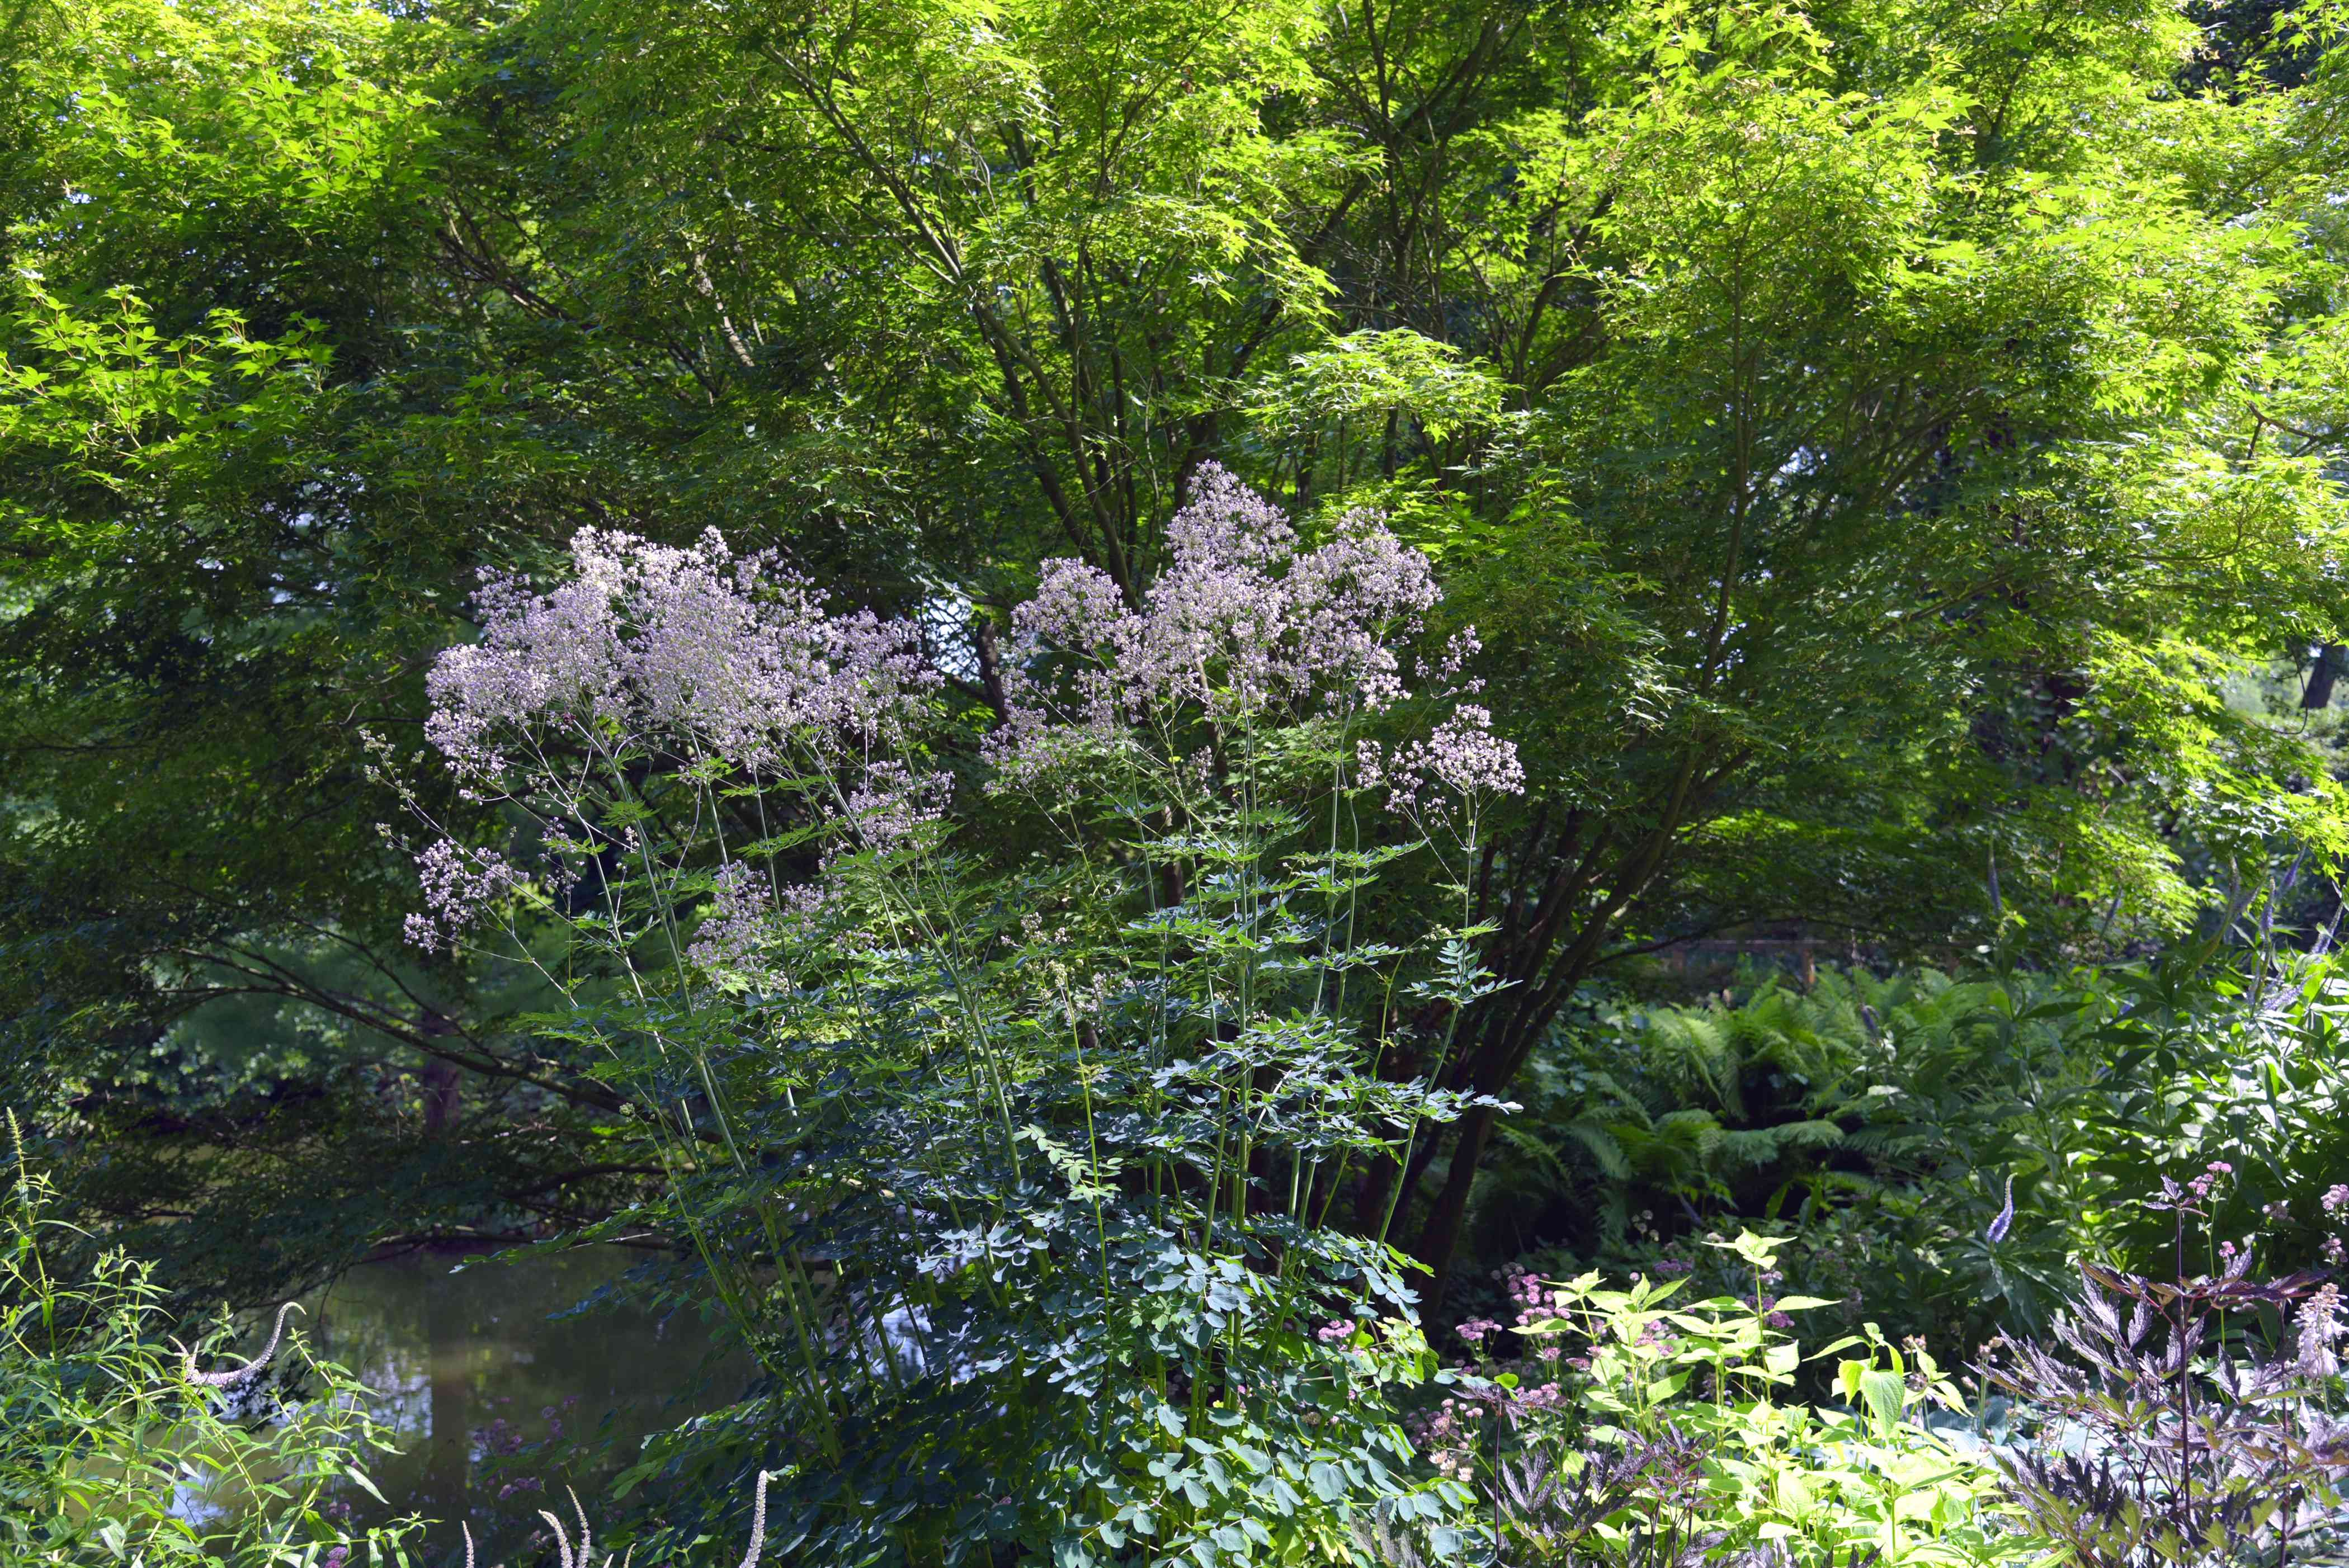 Meadow rue plant with tall thin stems and small purple flower clusters on top in middle of garden